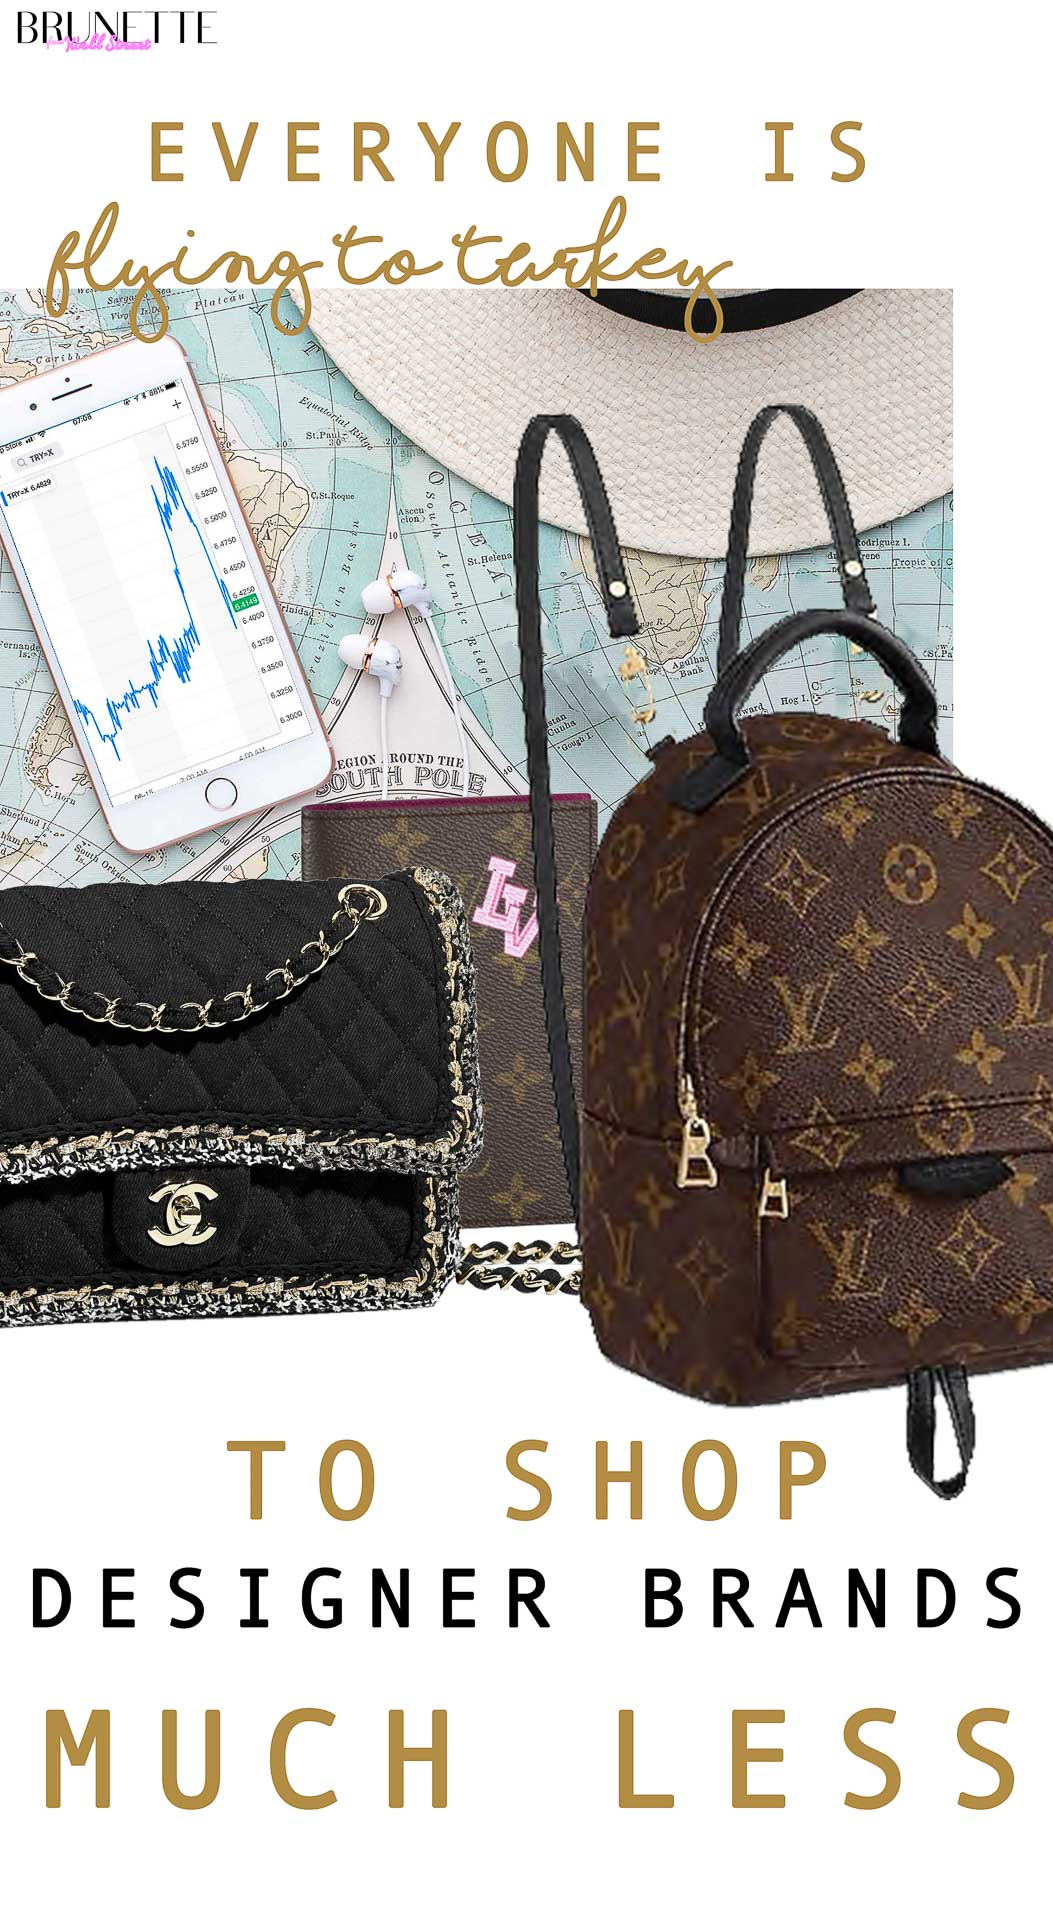 Chanel flap bag, Louis Vuitton backpack with text overlay EVERYONE IS FLYING TO TURKEY TO SHOP DESIGNER BRANDS for less